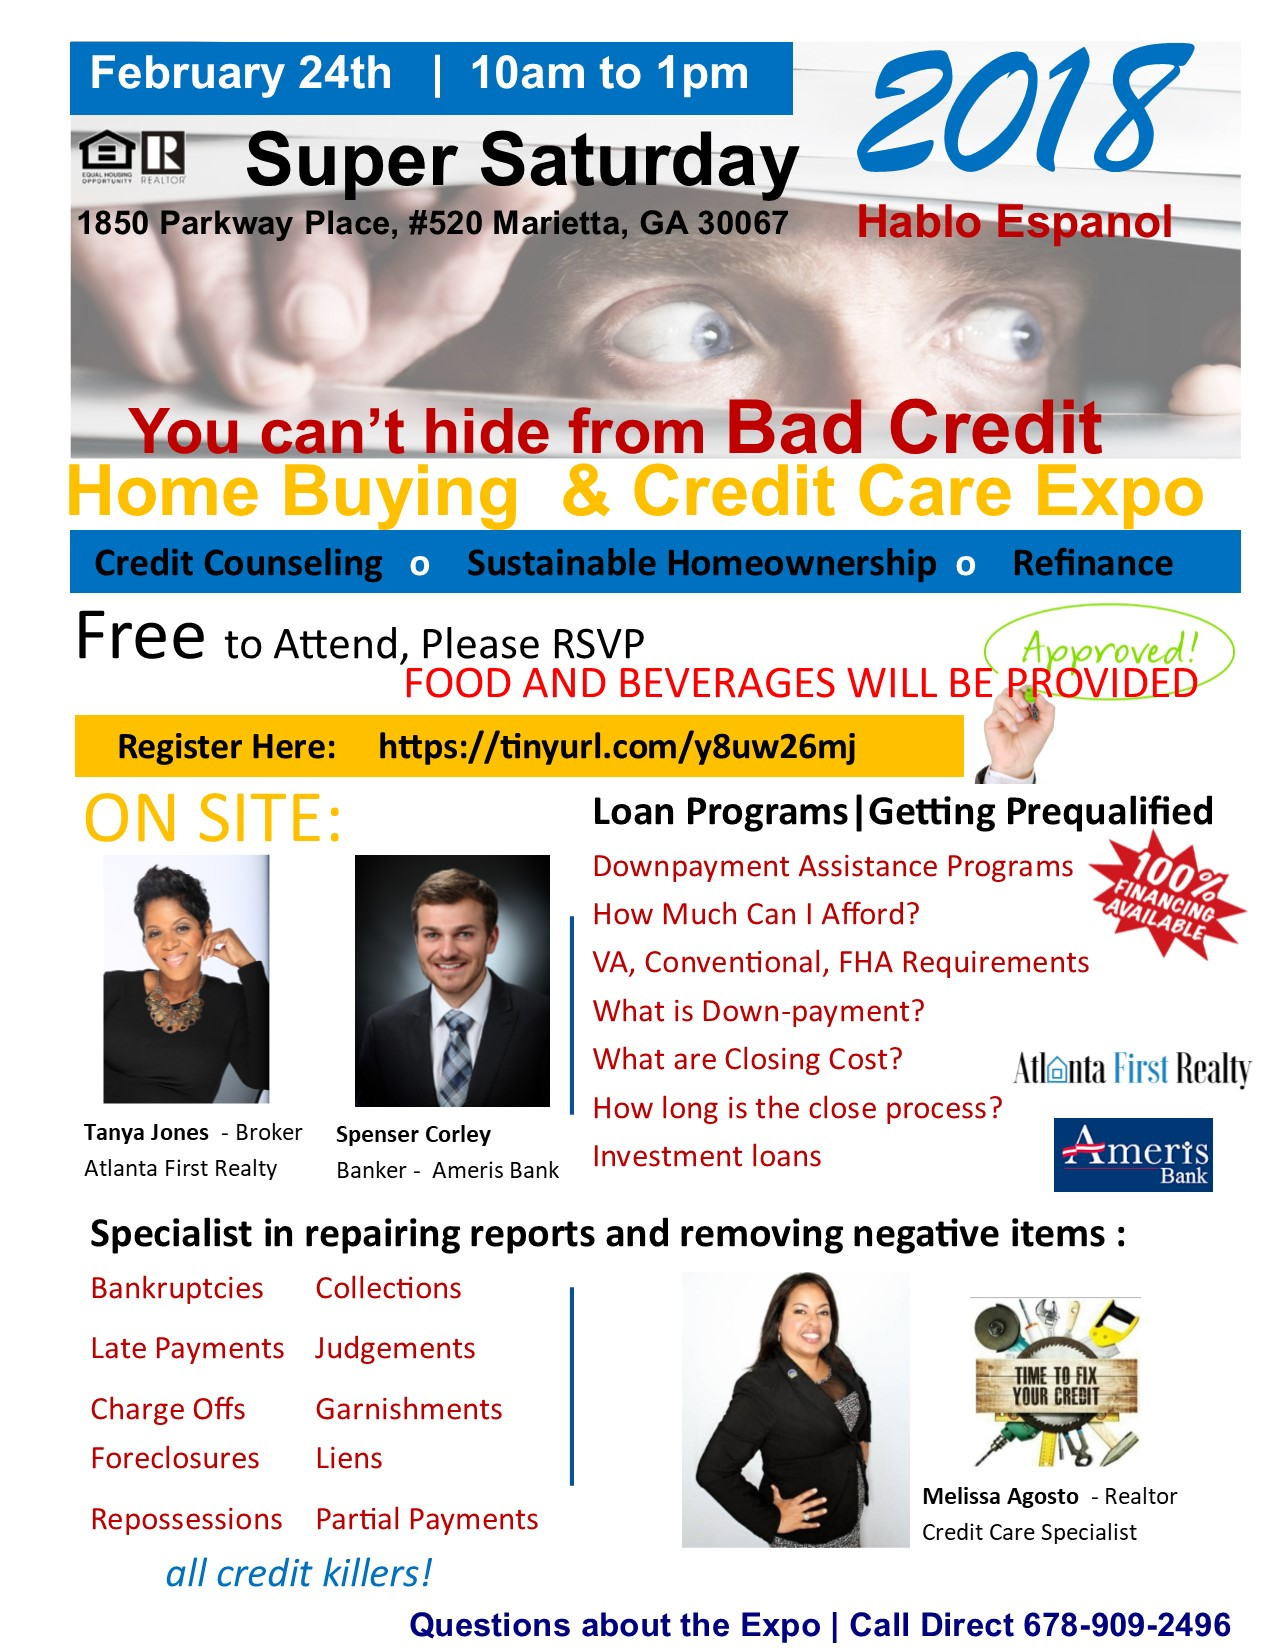 Home buying credit care expo tickets sat feb 24 2018 at 1000 mortage lender onsite to discuss options in qualifying for a home loan downpayment assistance refinancing options and much more malvernweather